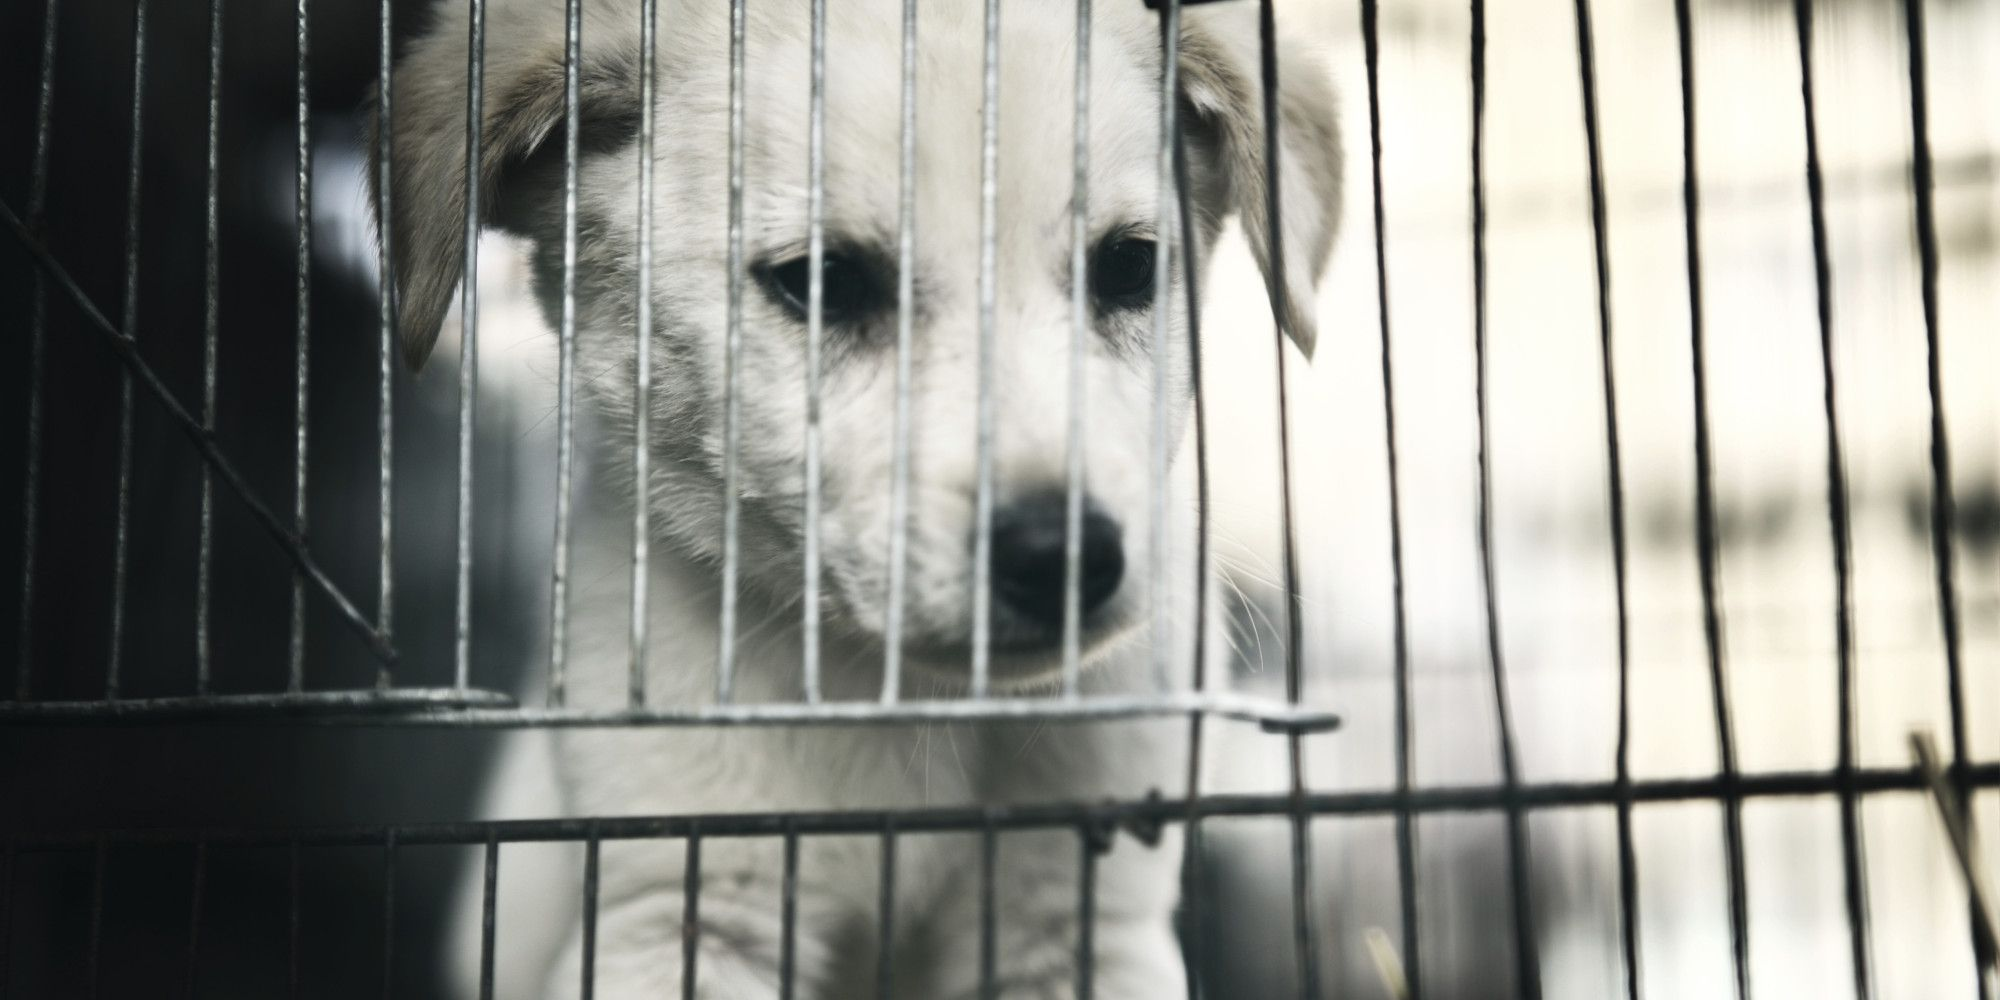 """""""Why I Would Always Adopt a Shelter Animal"""" http://www.huffingtonpost.com/lisa-lafontaine/adopt-a-shelter-animal_b_5609875.html?ncid=fcbklnkushpmg00000063  ALWAYS ADOPT!!!!!!"""